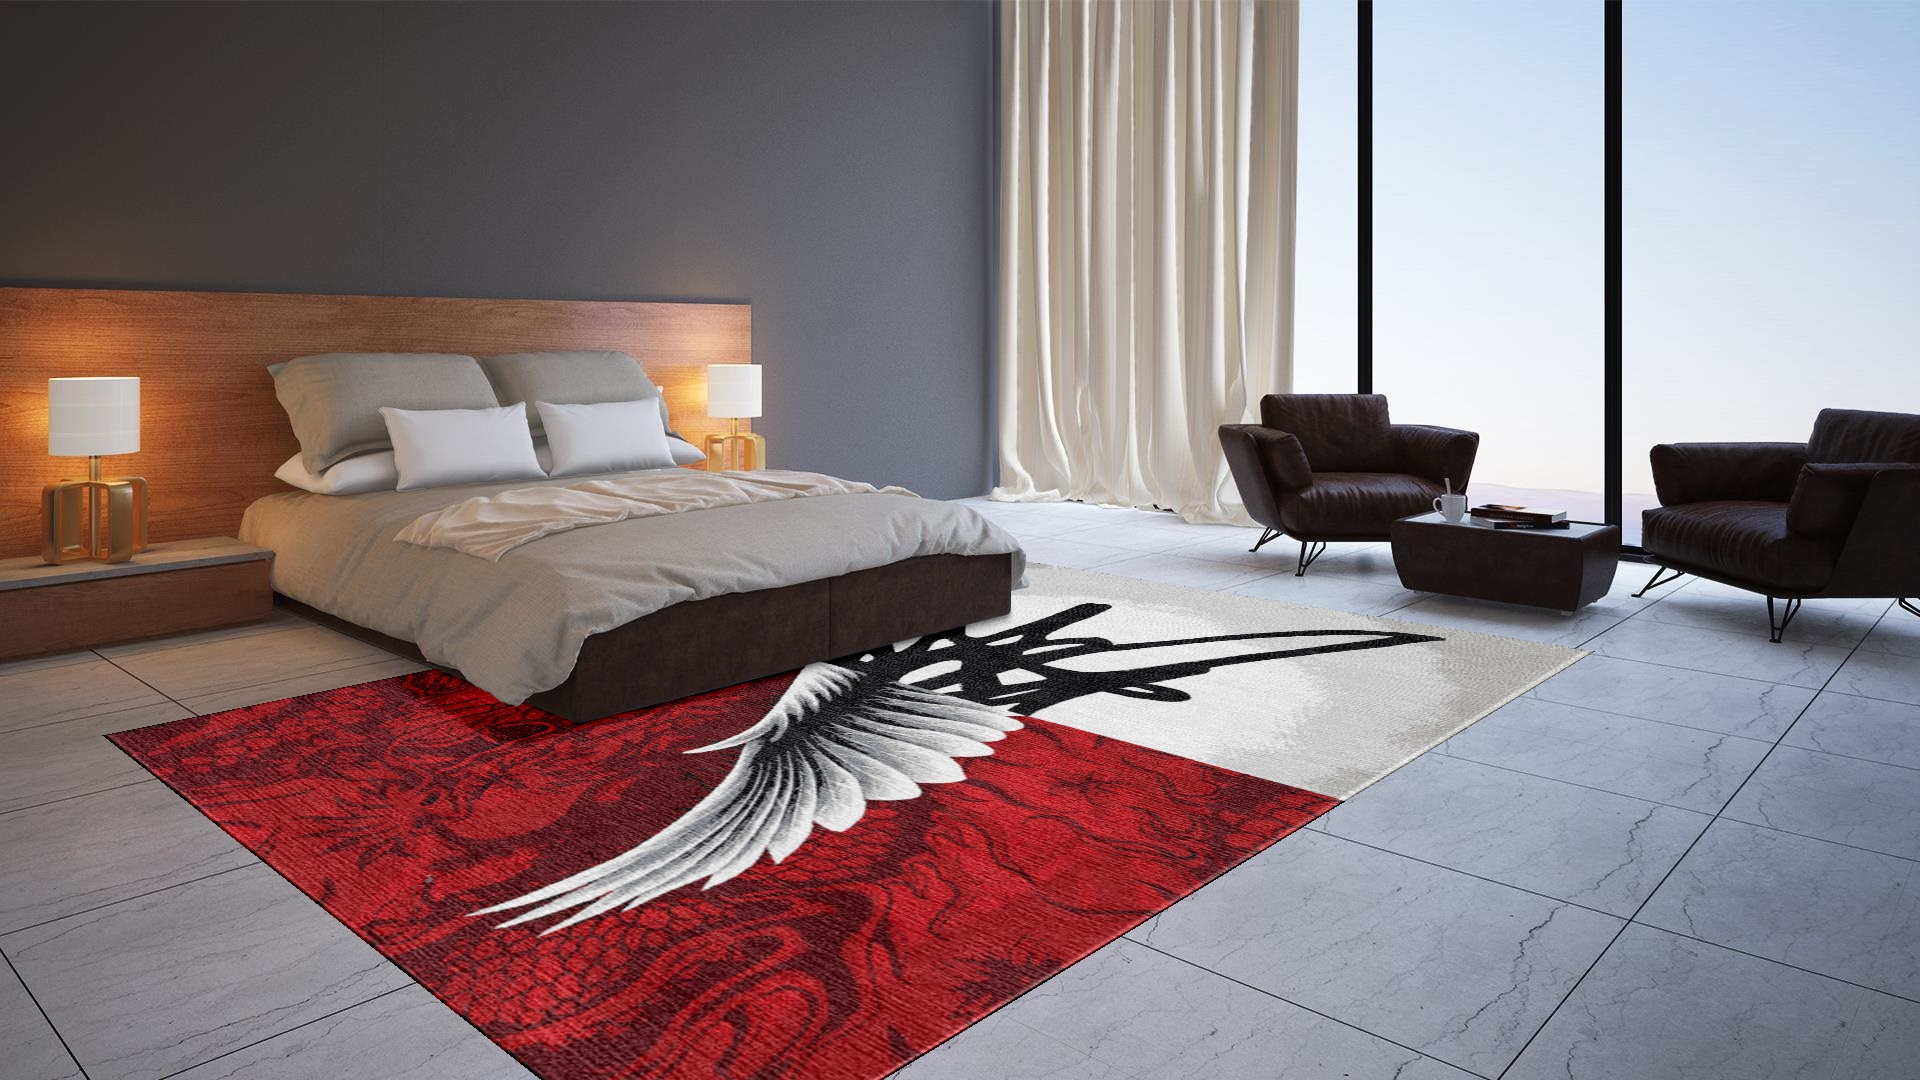 Red Dragon in Room 1.jpg